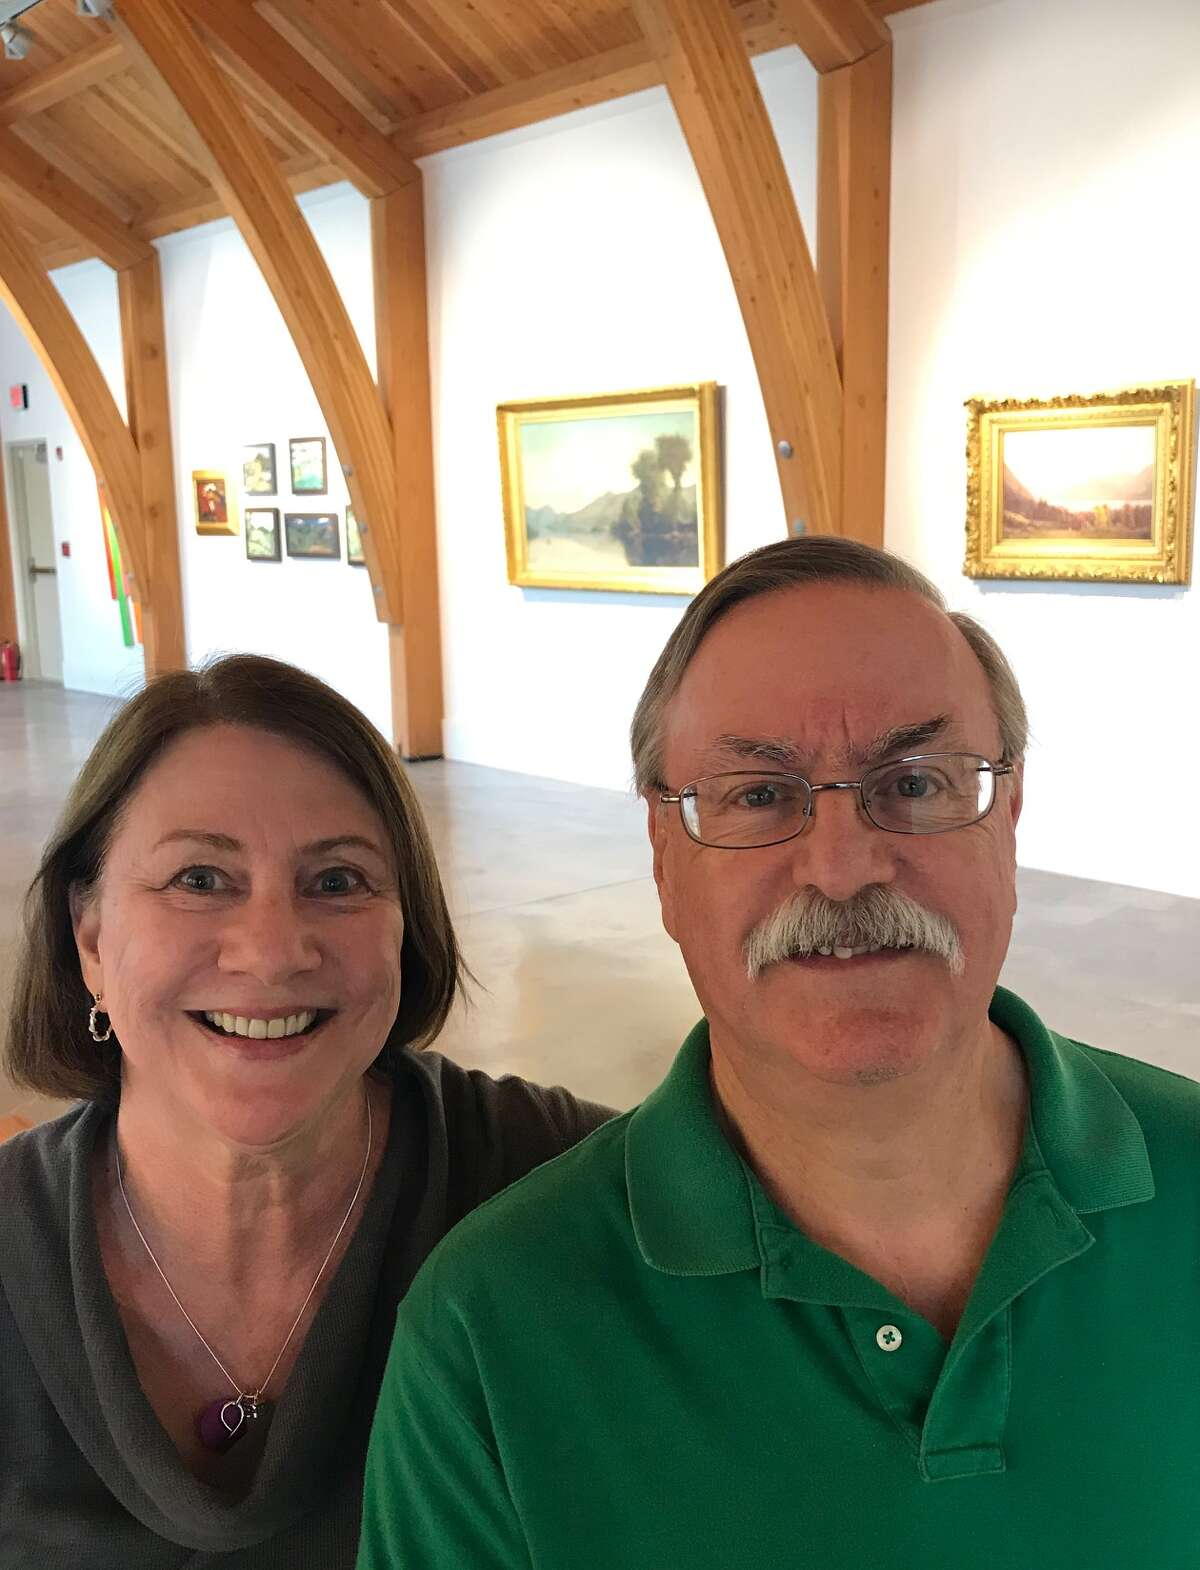 Jeanne and Bernie Brown, who helped curate the new exhibit, Landscapes Lost and Found: Two Centuries of Art from Bolton Landing at the Bolton Historical Museum